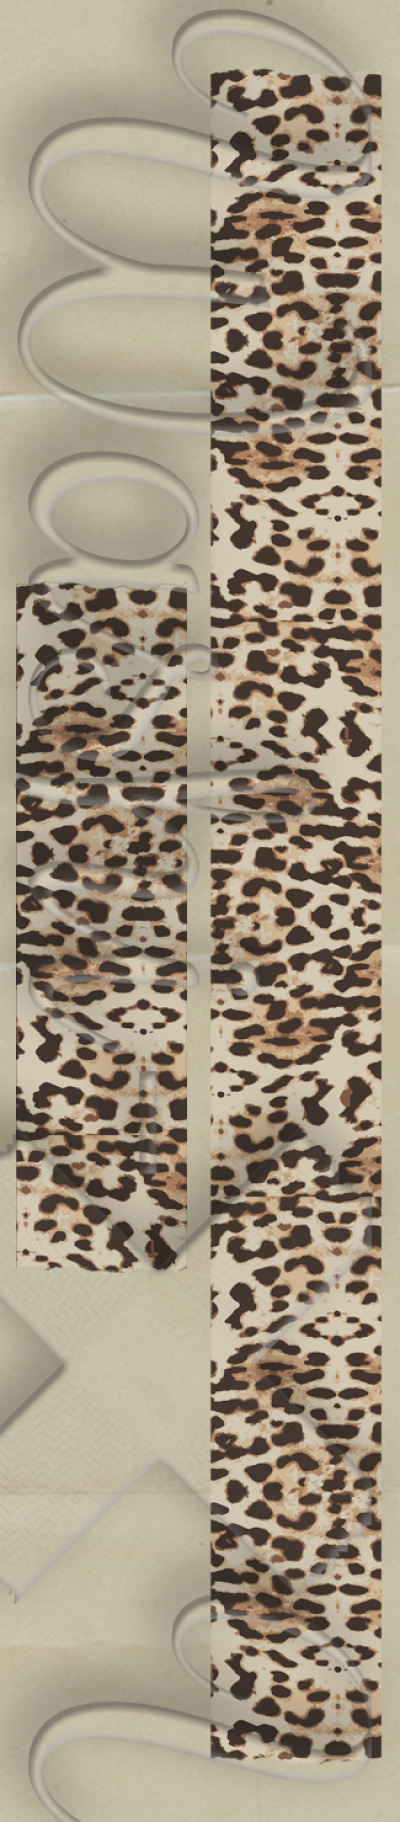 Leopard patterned washi tape